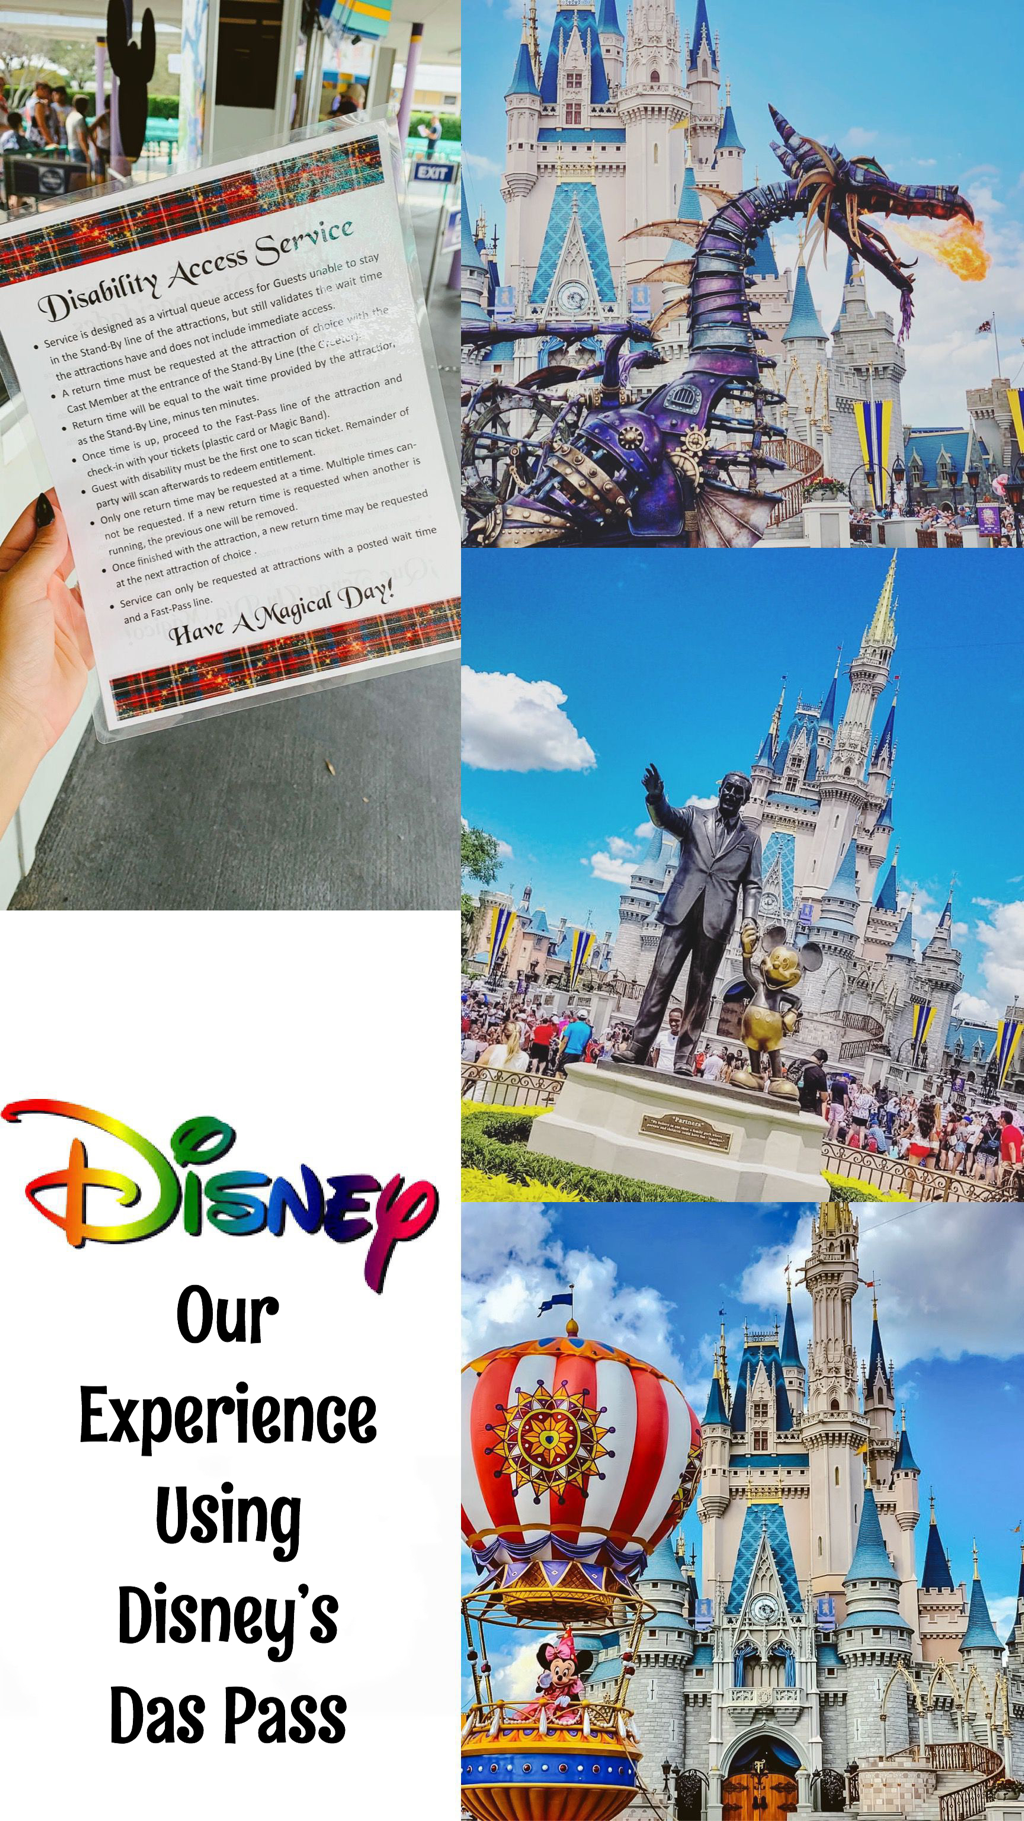 Our Experience Using Disney's Das Pass